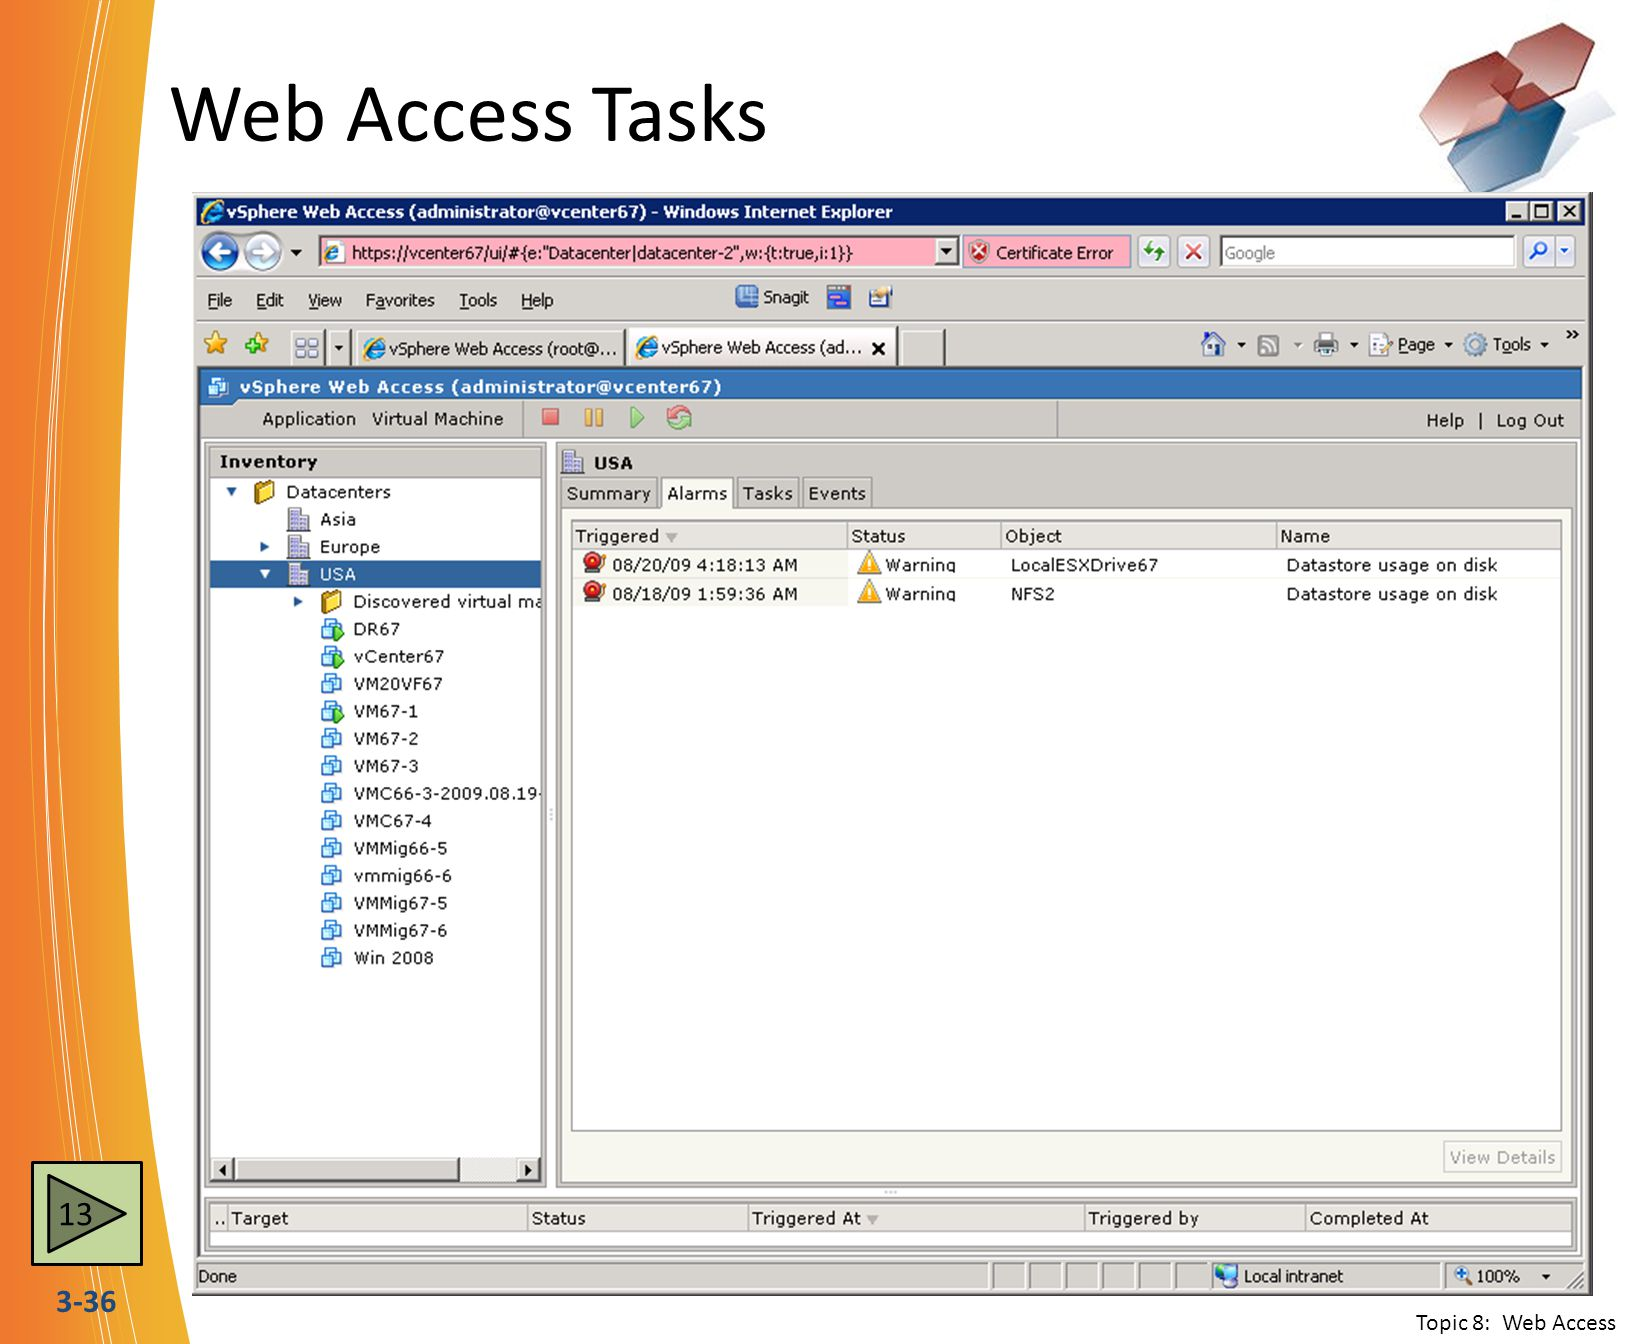 Web Access Tasks When logged into vCenter, Datacenter and Alarm information is available.